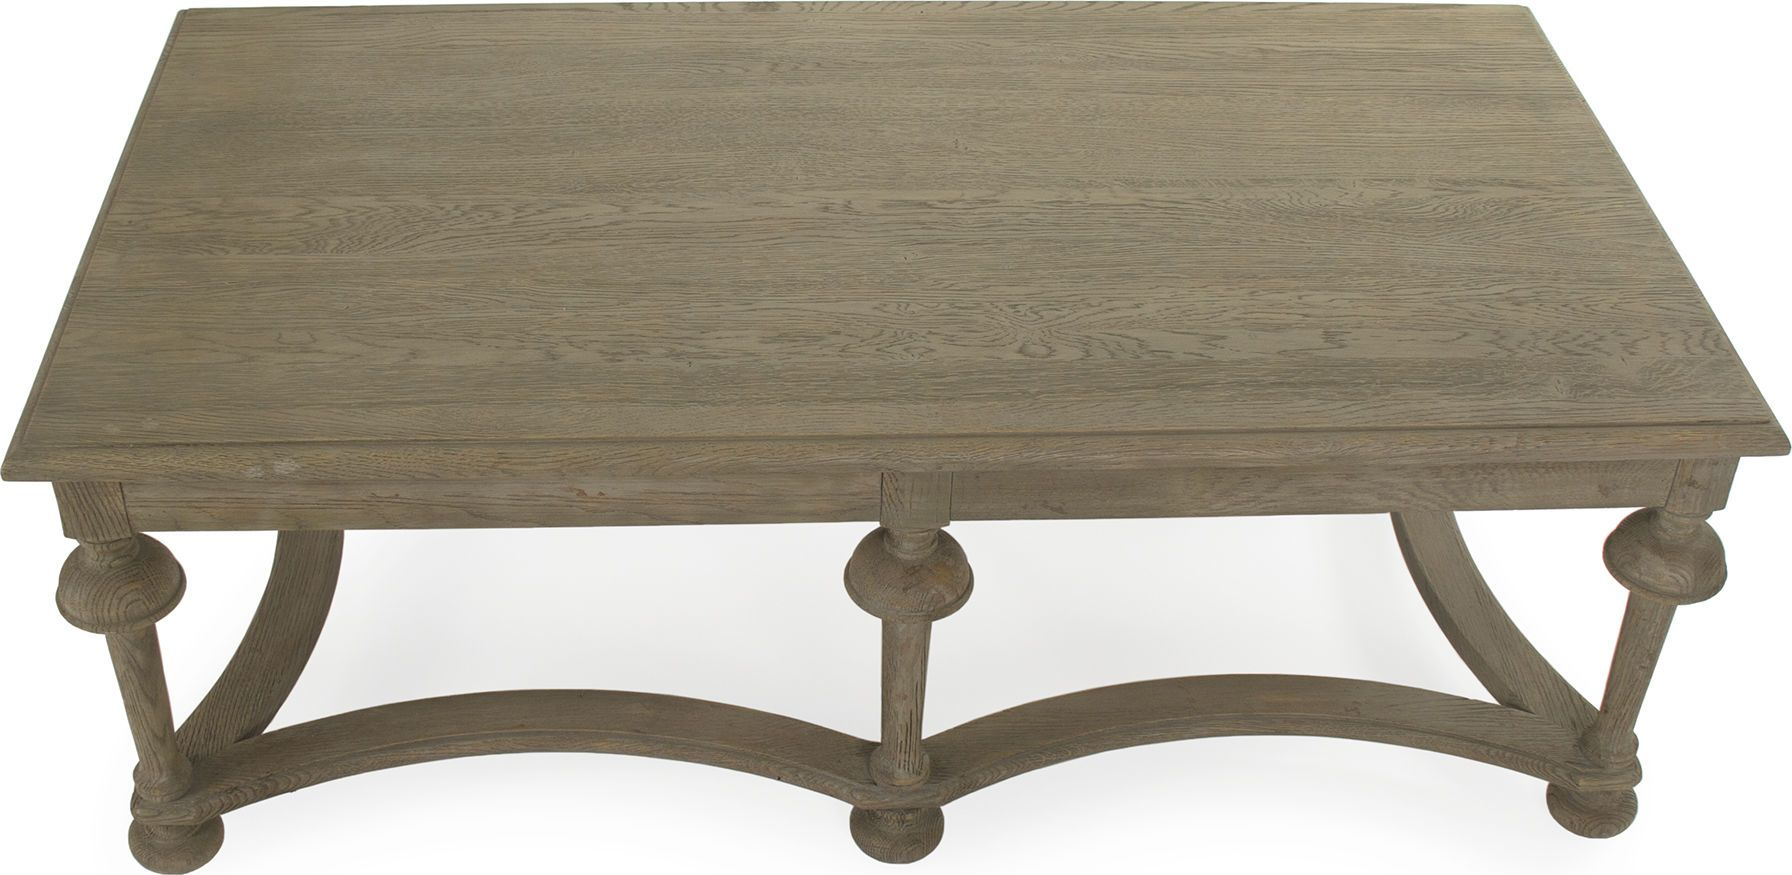 Bachelor Coffee Table Color Natural Oak Top Table Home Decor